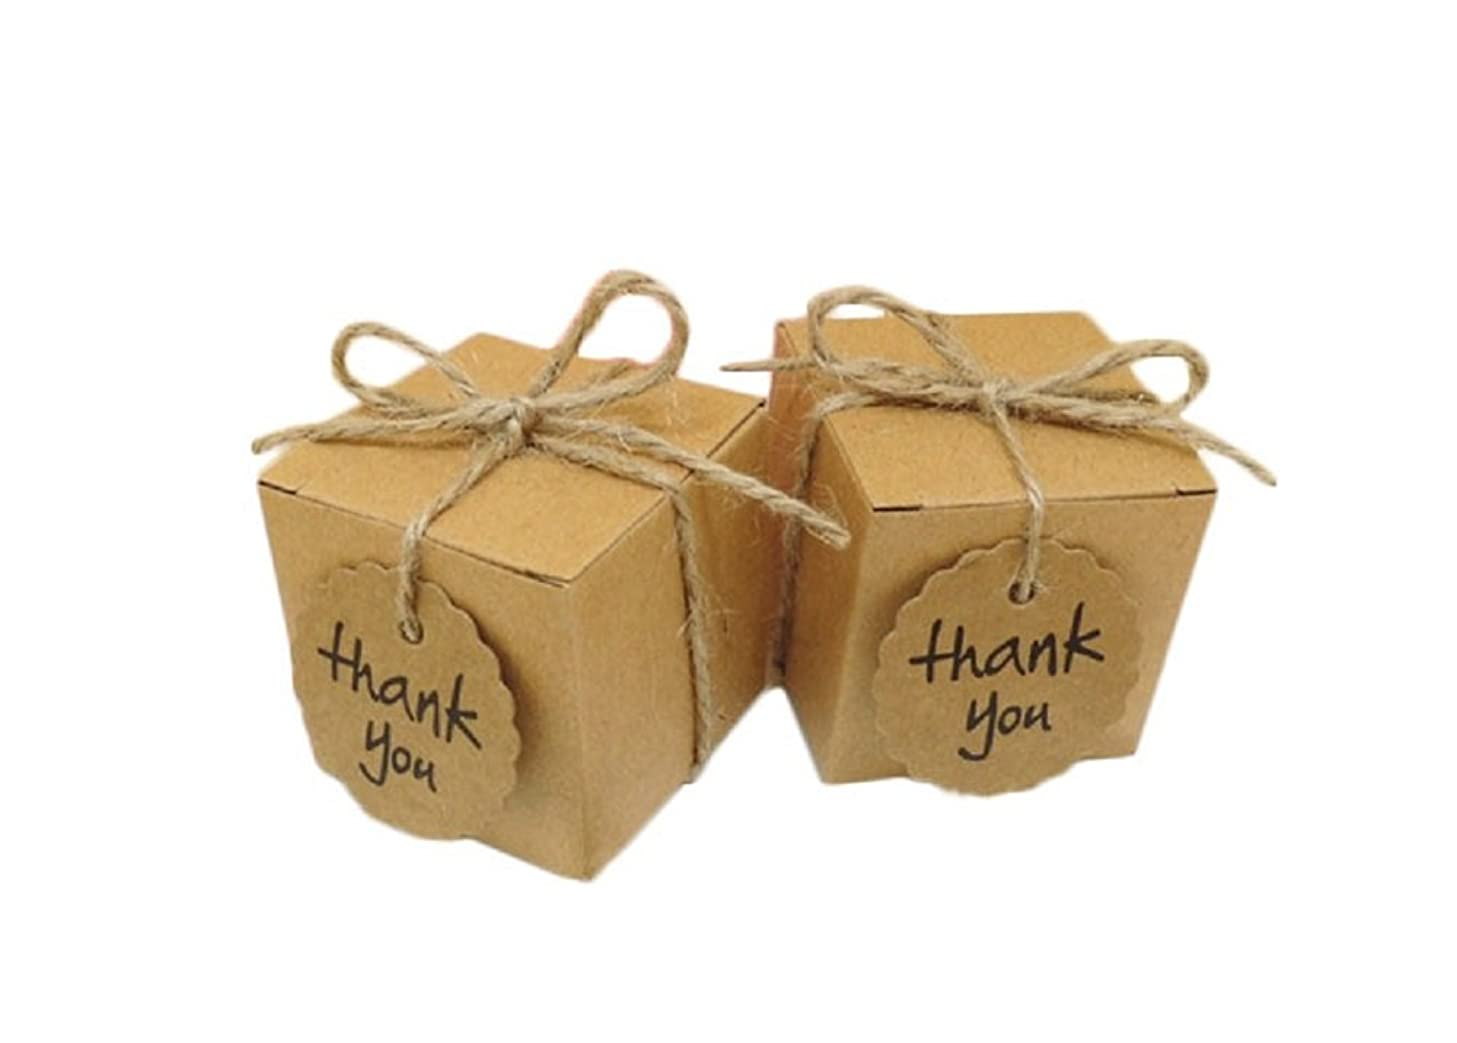 Yalulu 50pcs Kraft Paper Pillow/Square Candy Box Rustic Wedding Favors Candy Holder Bags Wedding Party Gift Boxes with Thank You Tags (Square)